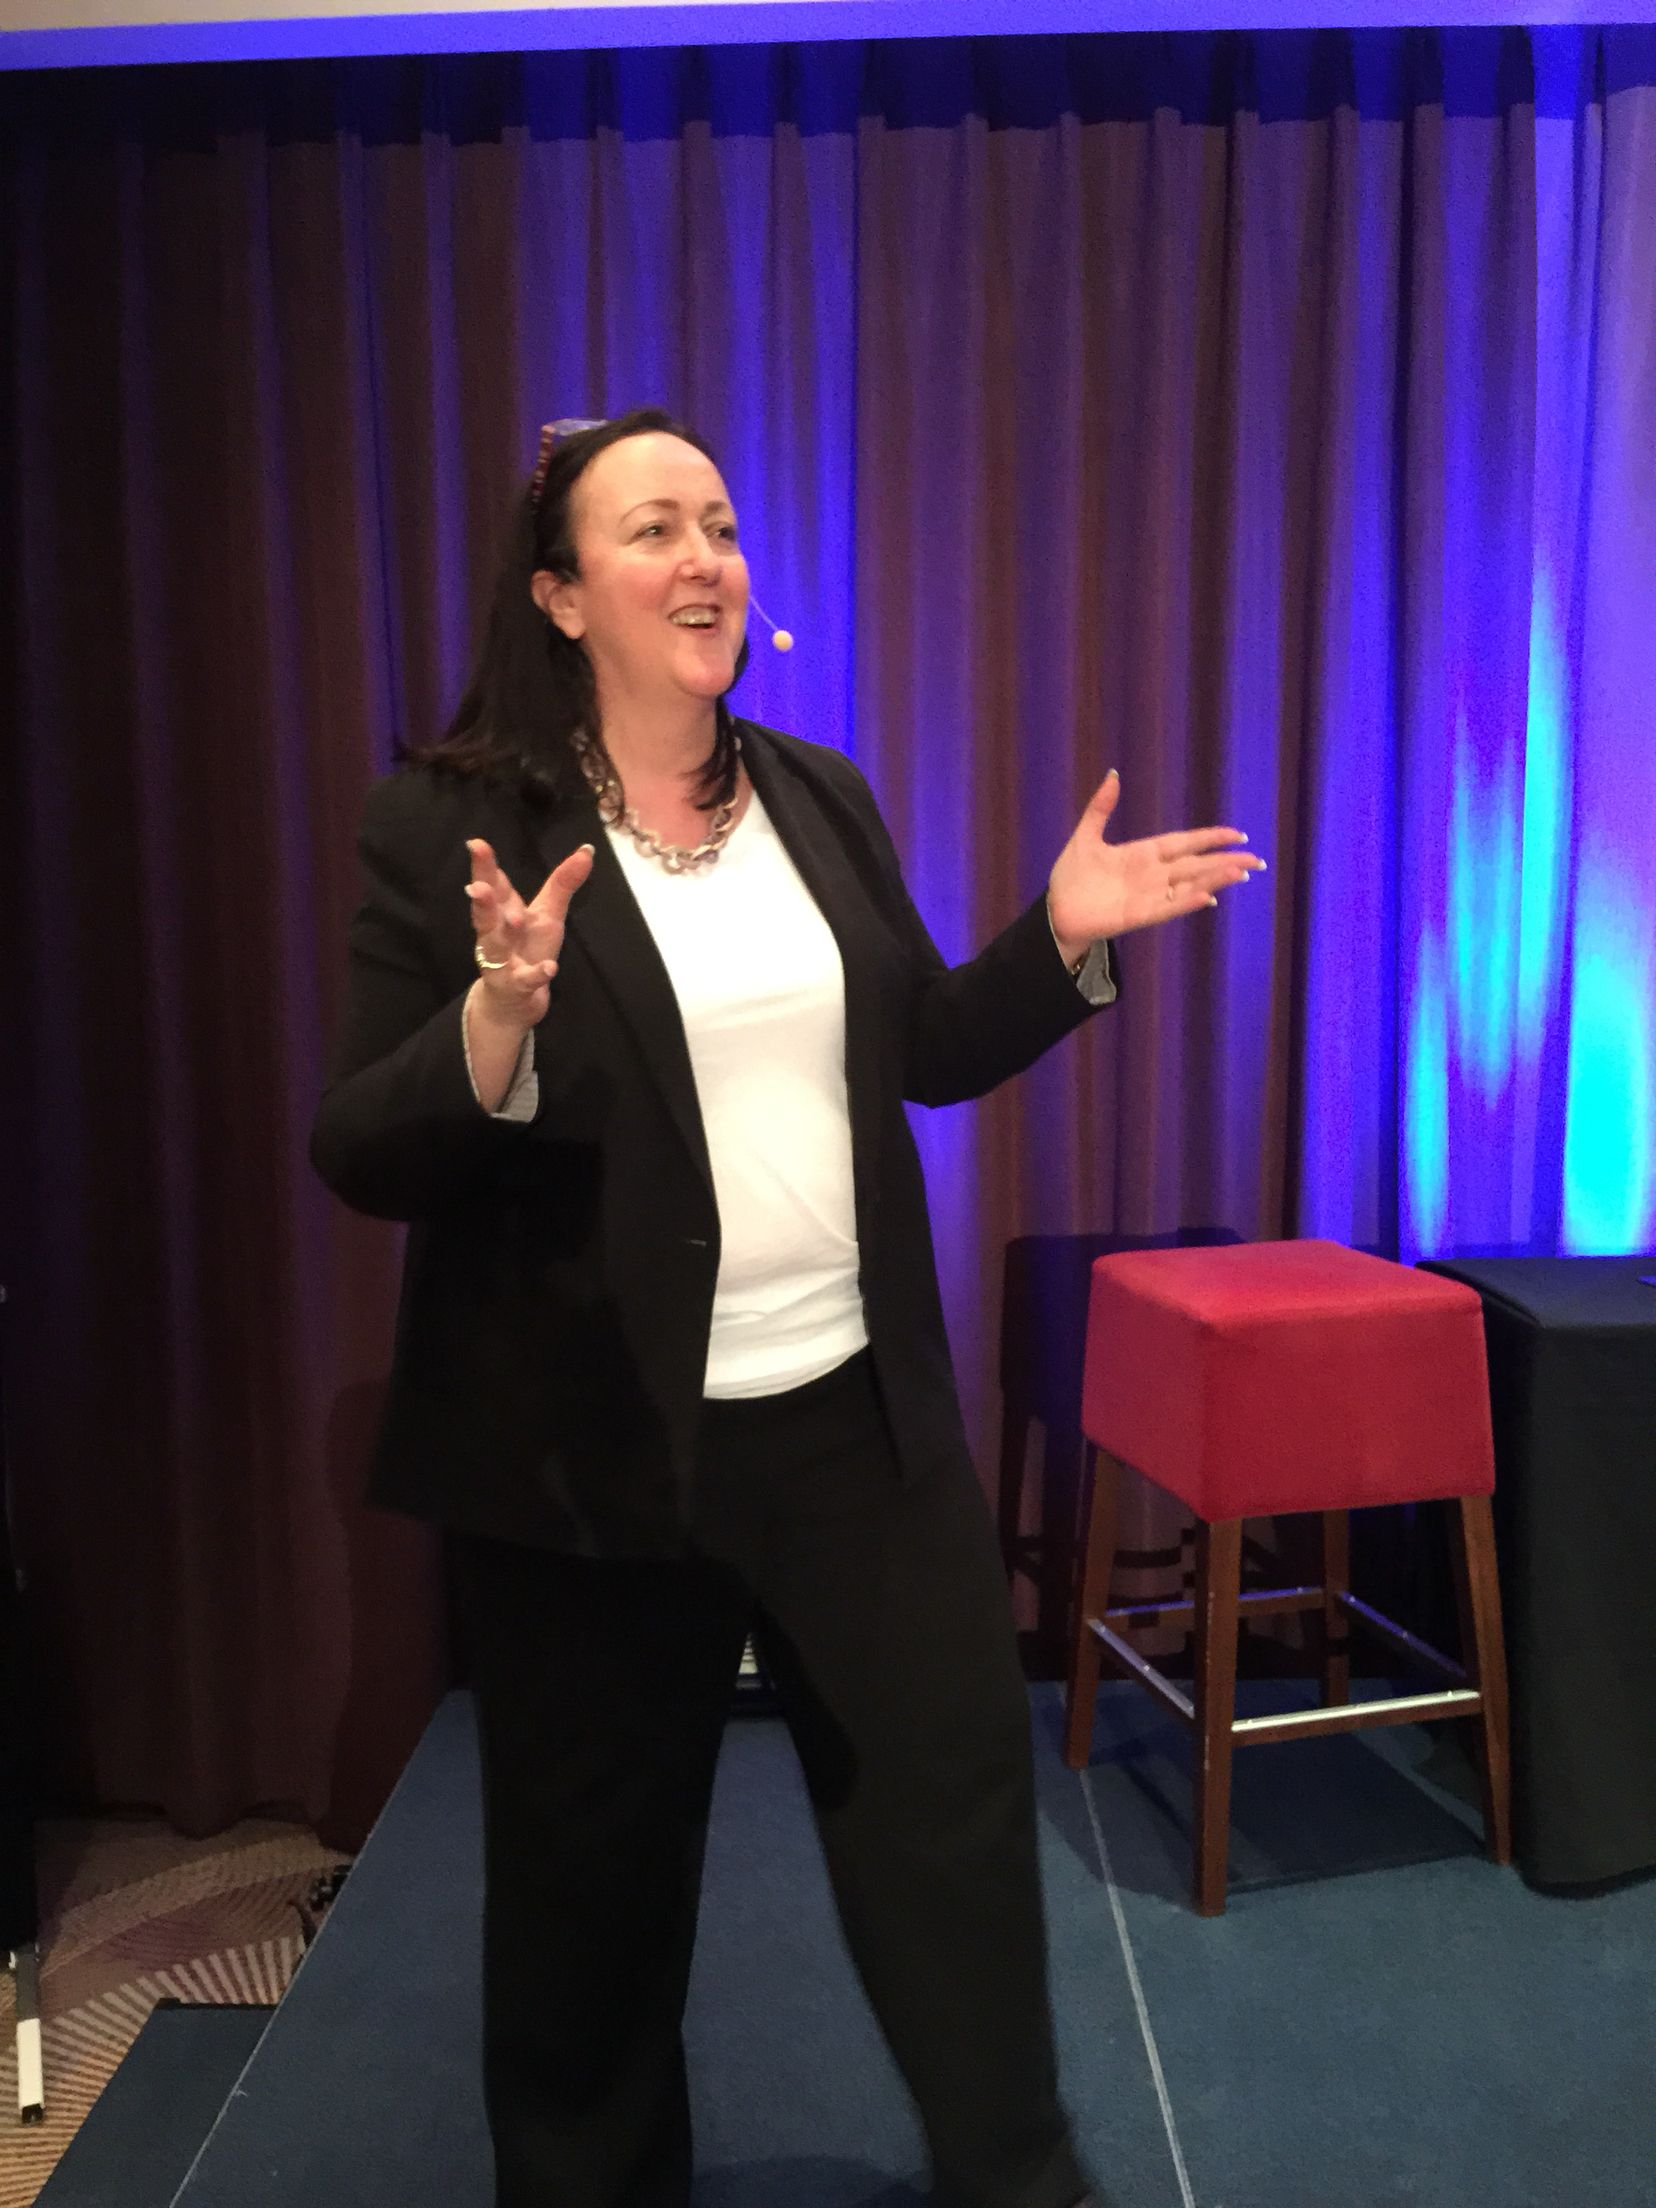 On stage at the Public Speakers University Http://www.carolefossey.com